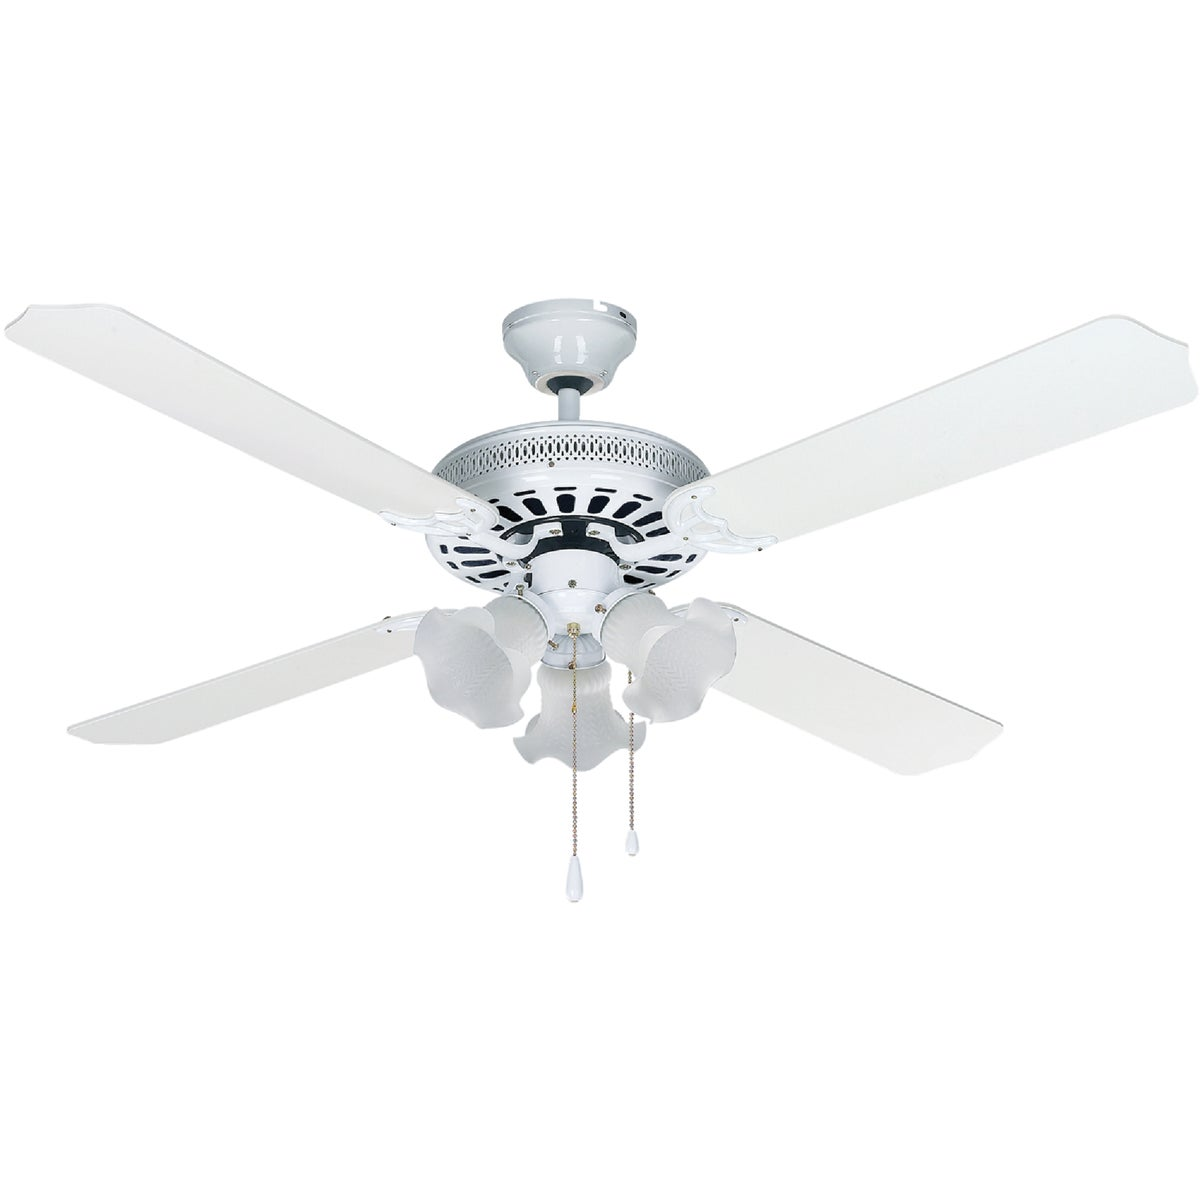 "52"" CHATEAU WHT CEIL FAN - CF52CHA4WH by Canarm Gs"